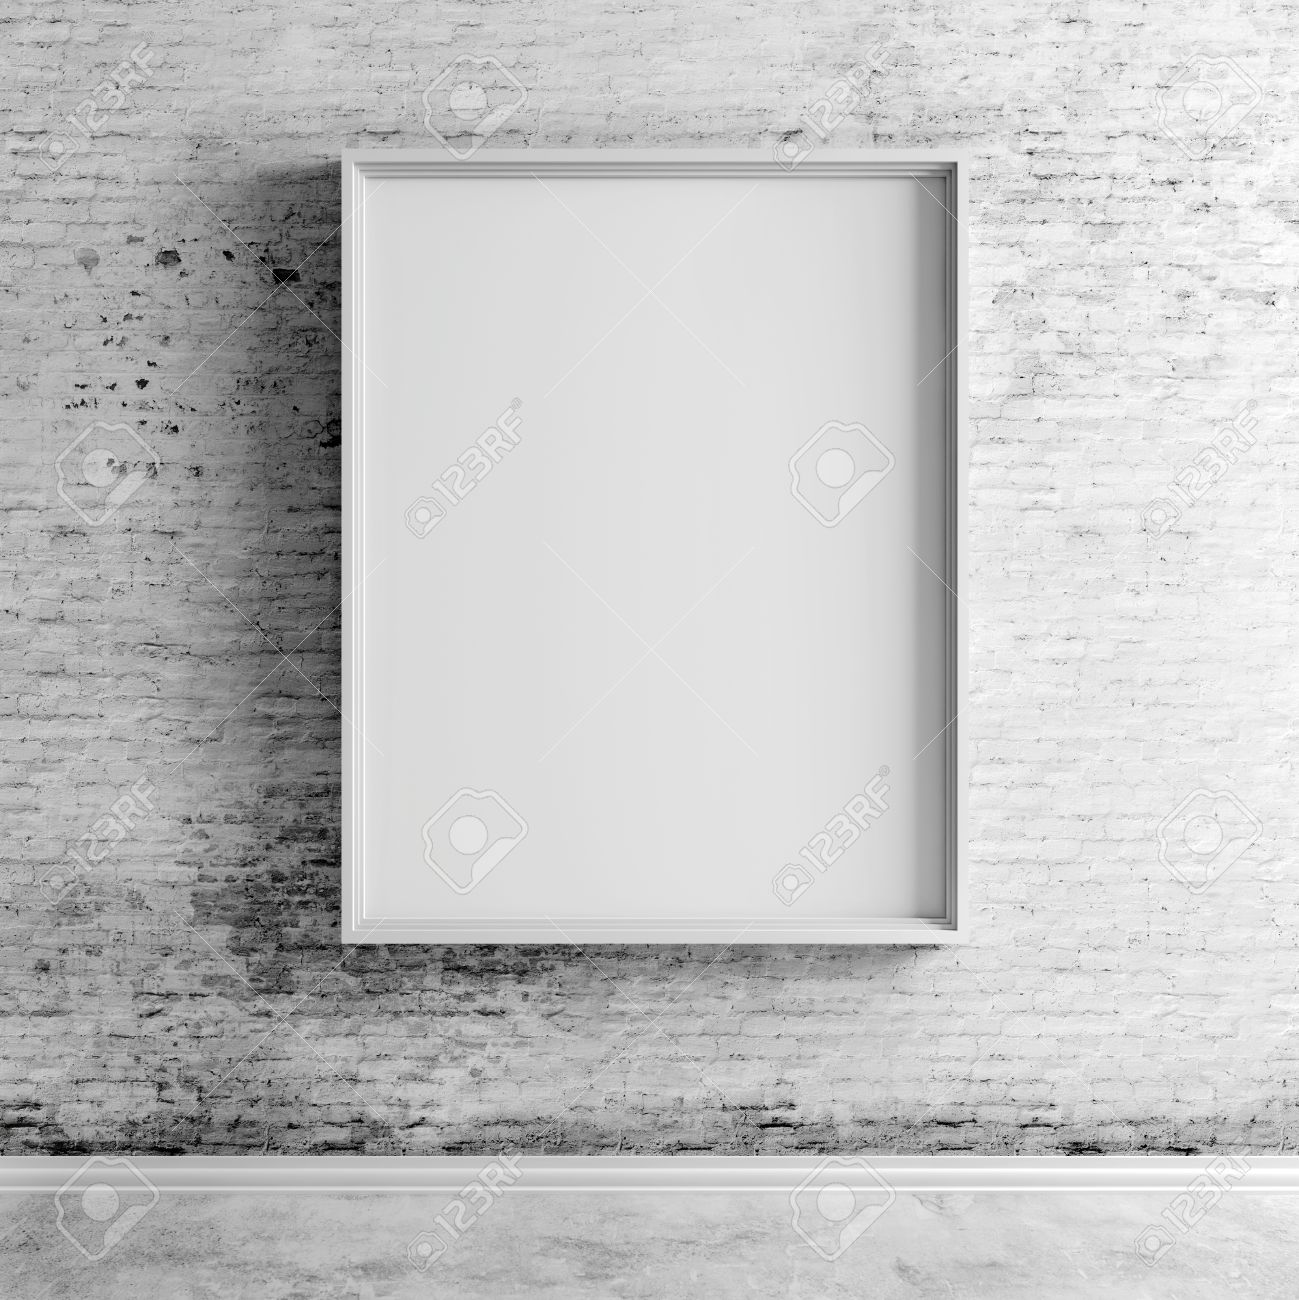 3d Blank Frame On White Vintage Brick Wall Stock Photo, Picture And ...